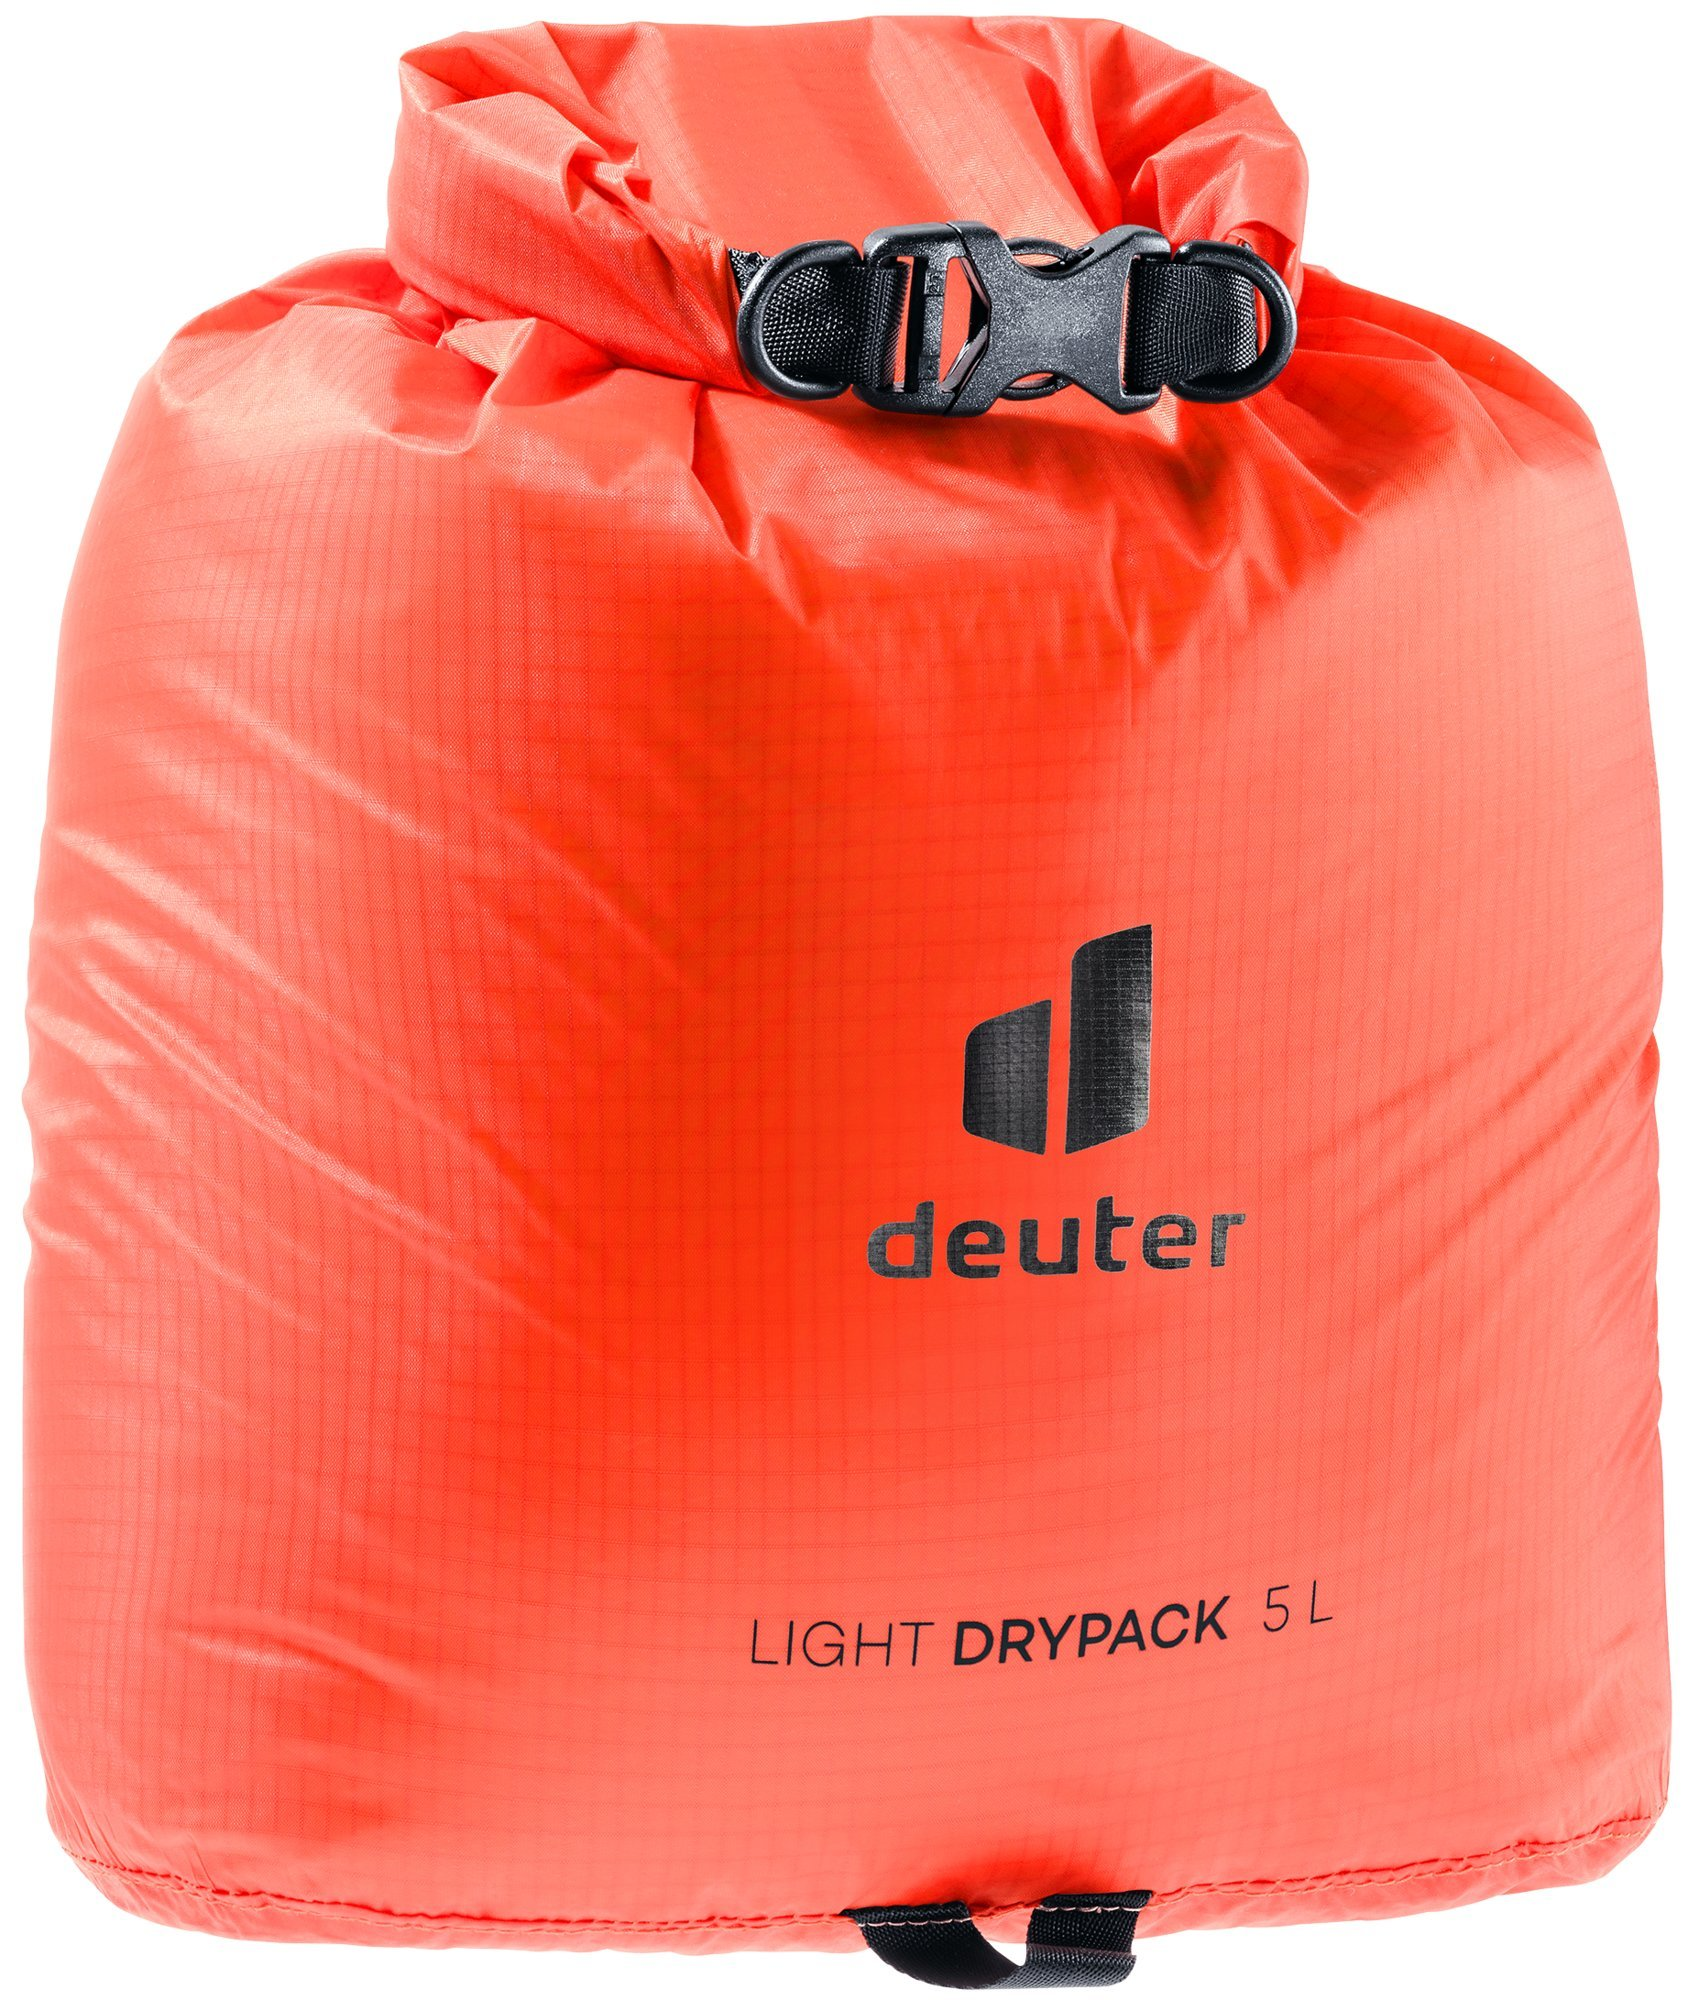 Новинки Гермомешок Deuter Light Drypack 5 0fb69deb693b48beabb082a7eb553a28.png